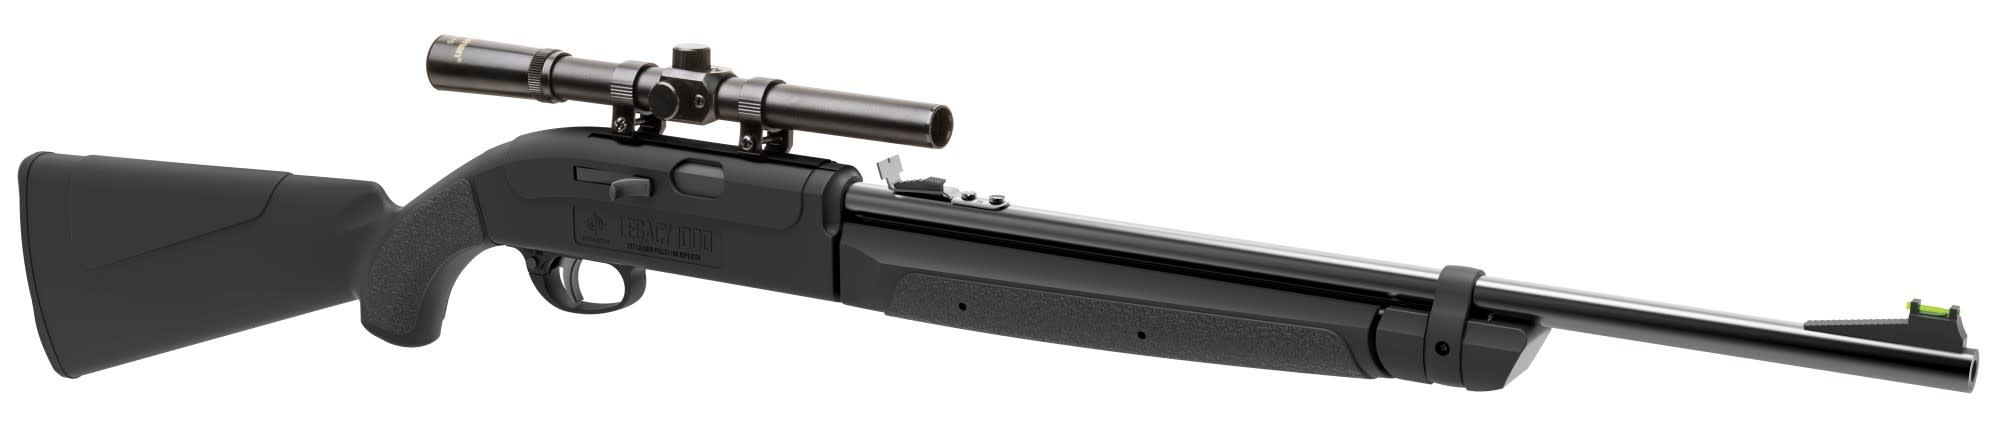 Crosman Legacy 1000 Air Rifle Multi-Pump Pneumatic Bolt Action .177 Pellet/BB with 4x15mm scope